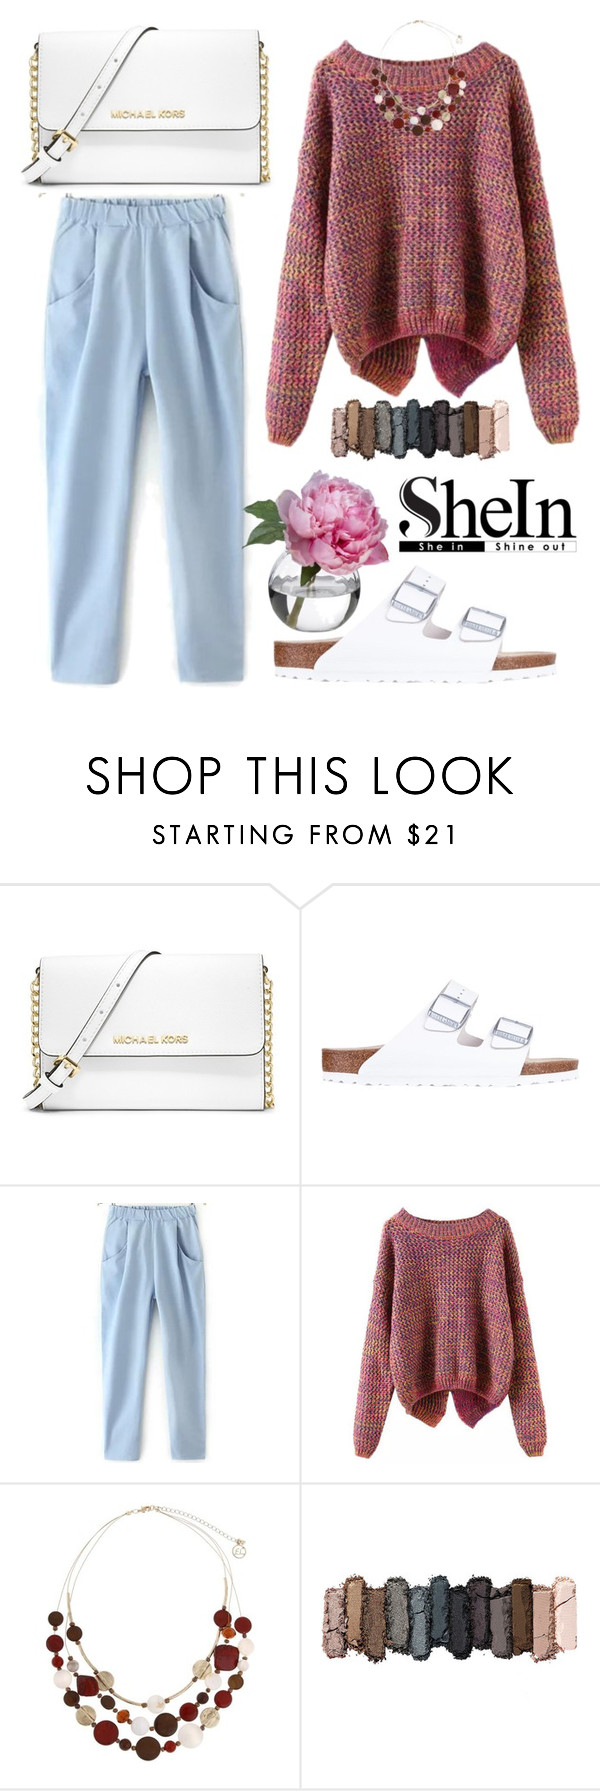 """Shine in. Shine out."" by shanelala ❤ liked on Polyvore featuring MICHAEL Michael Kors, Birkenstock, Erica Lyons, Urban Decay and Diane James"